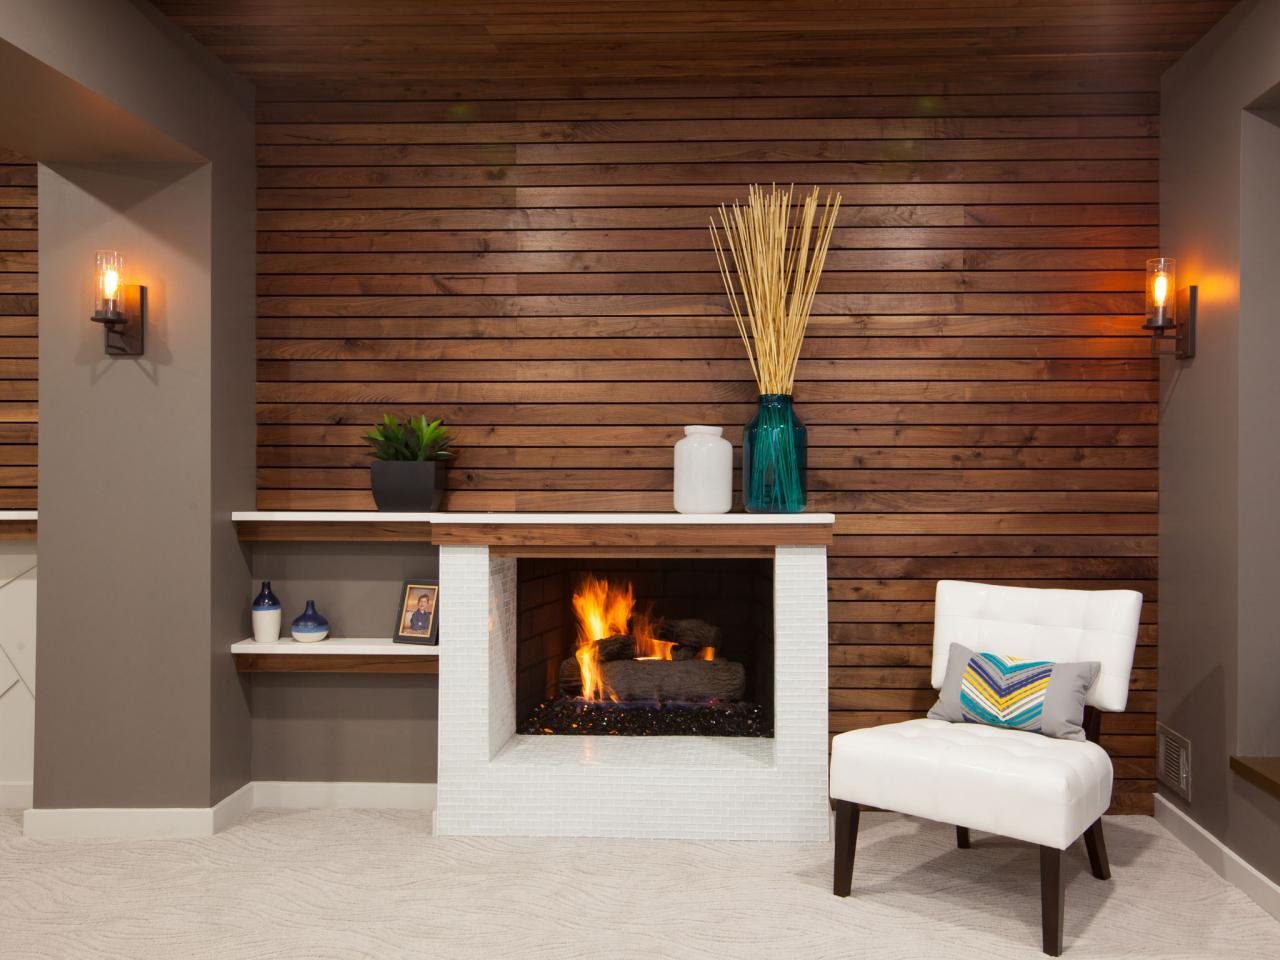 Basement Remodeling Ideas from TV How to Install a Vapor Barrier  HGTV